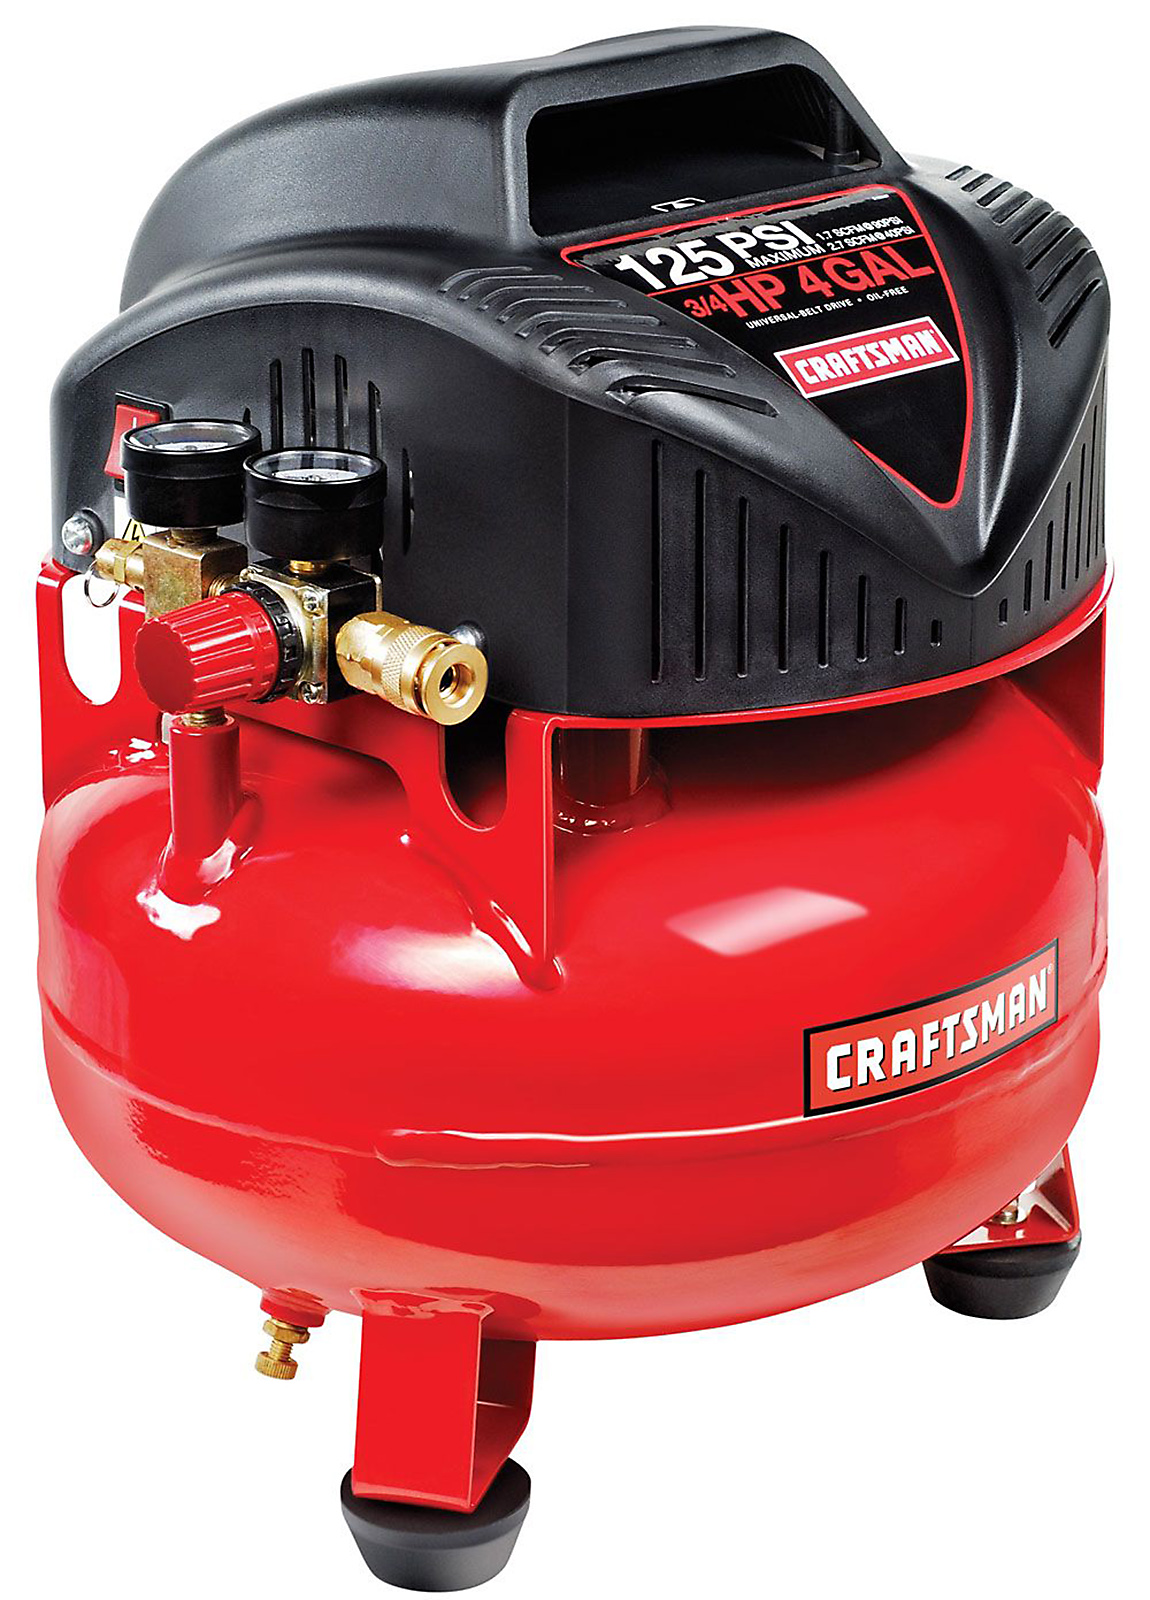 craftsman 4 gallon 0 75 hp oil free pancake air compressor 125 max psi gma c compressor wiring diagram sears air compressor wiring diagram [ 1150 x 1600 Pixel ]